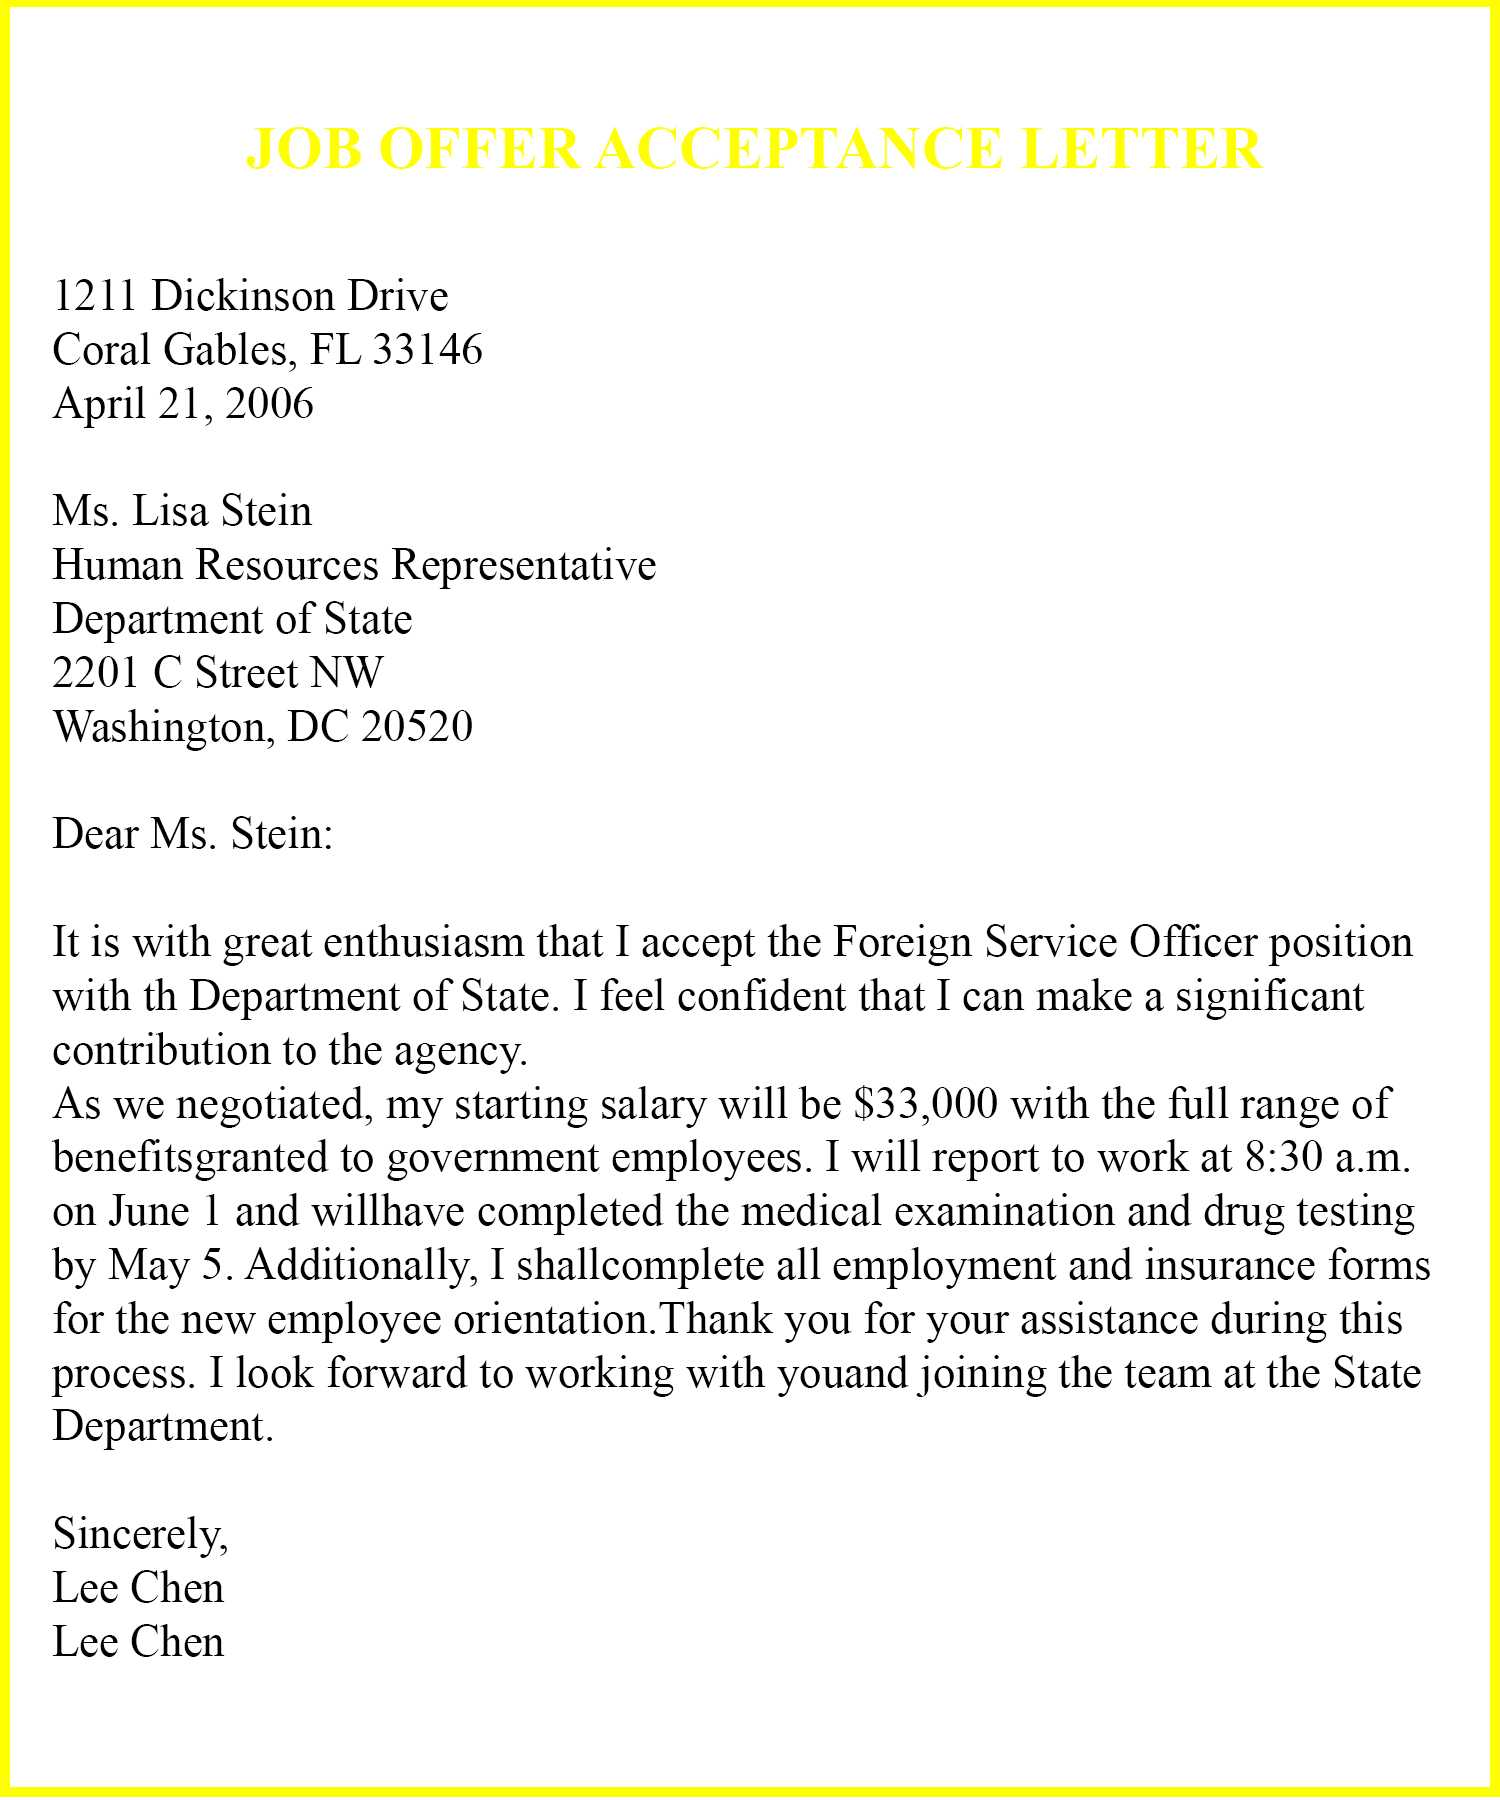 Employment Offer Letter Templates from toplettertemplate.com